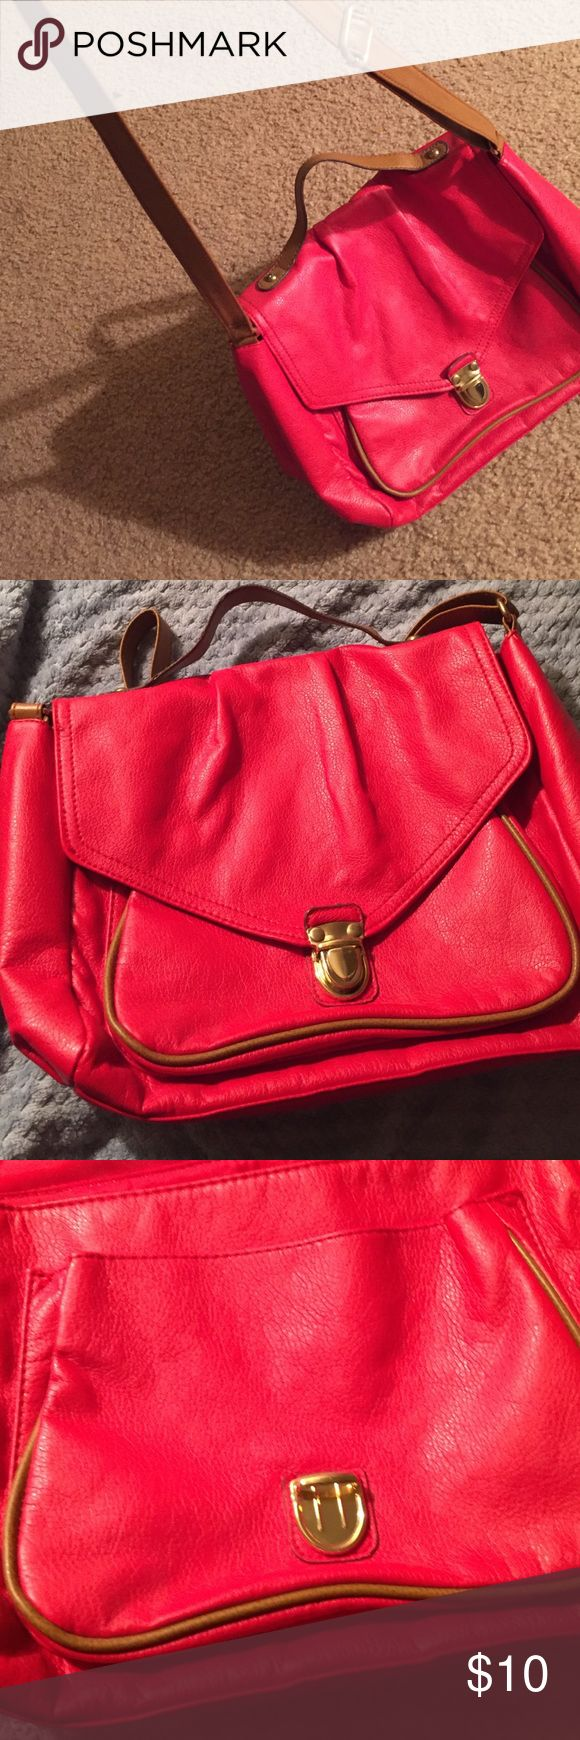 Red H&m purse Red h&m purse in good condition H&M Bags Crossbody Bags